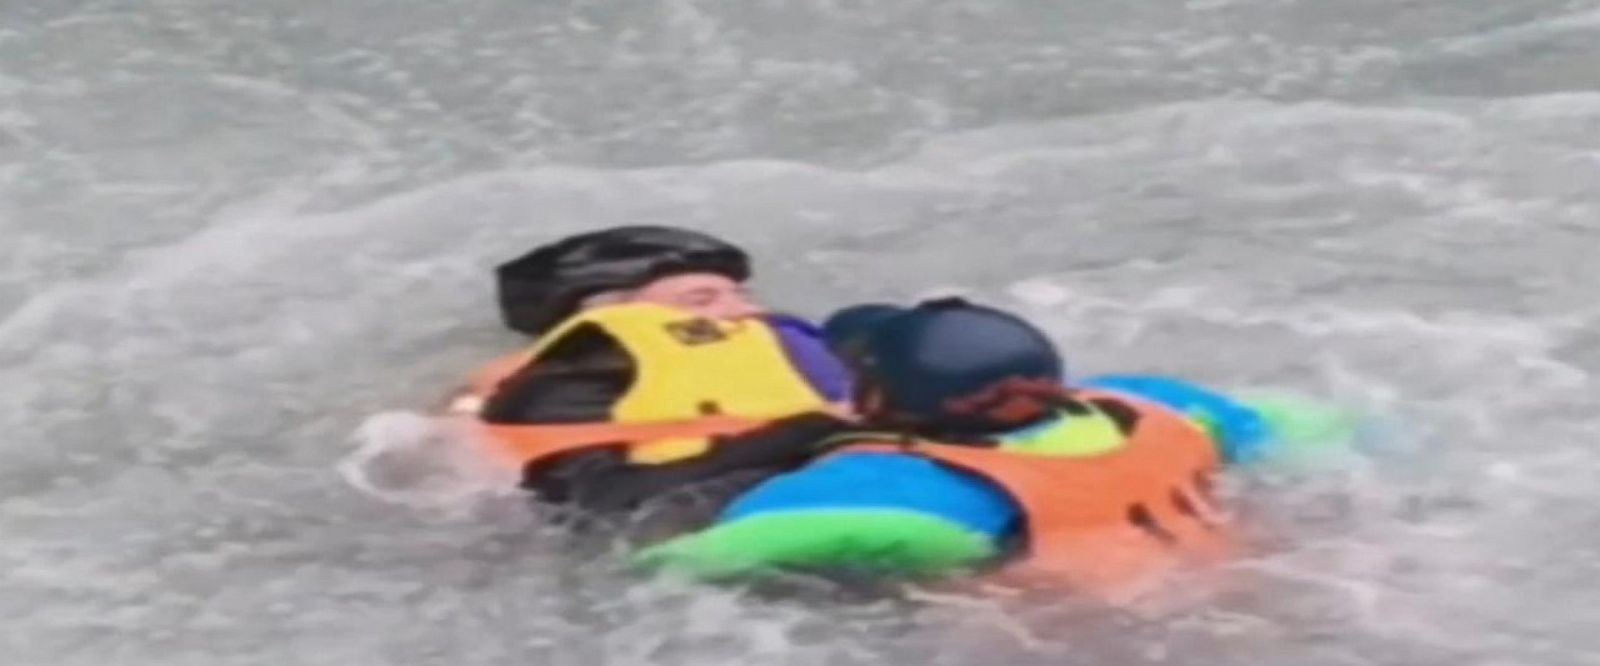 VIDEO: Alaska man celebrating his birthday pulls kayaker to safety